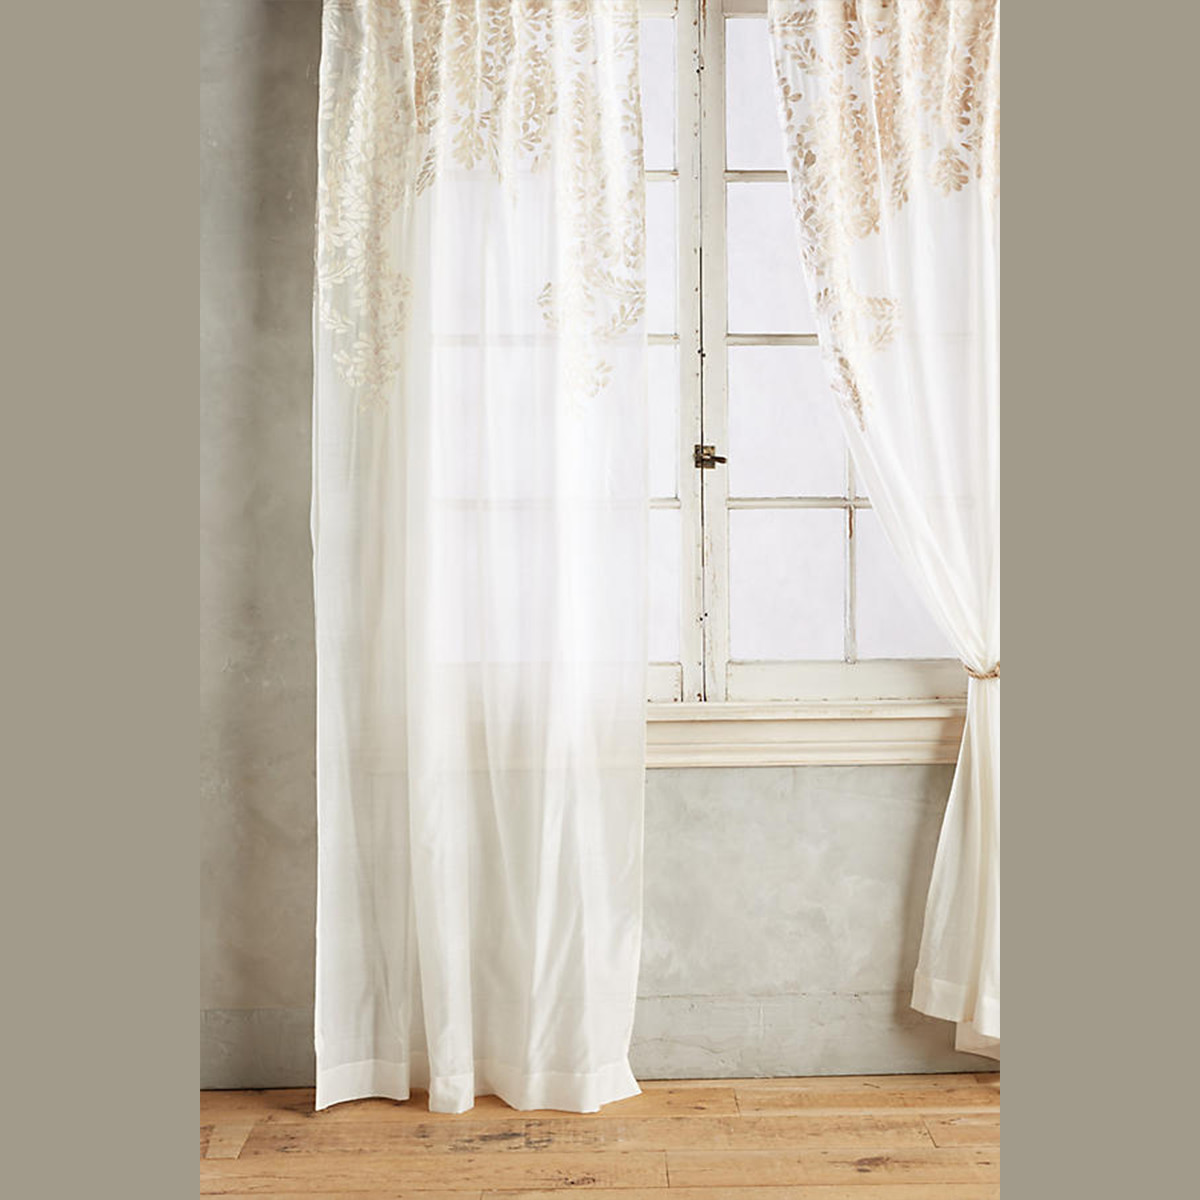 Cotton sari silk curtains with floral pattern photo